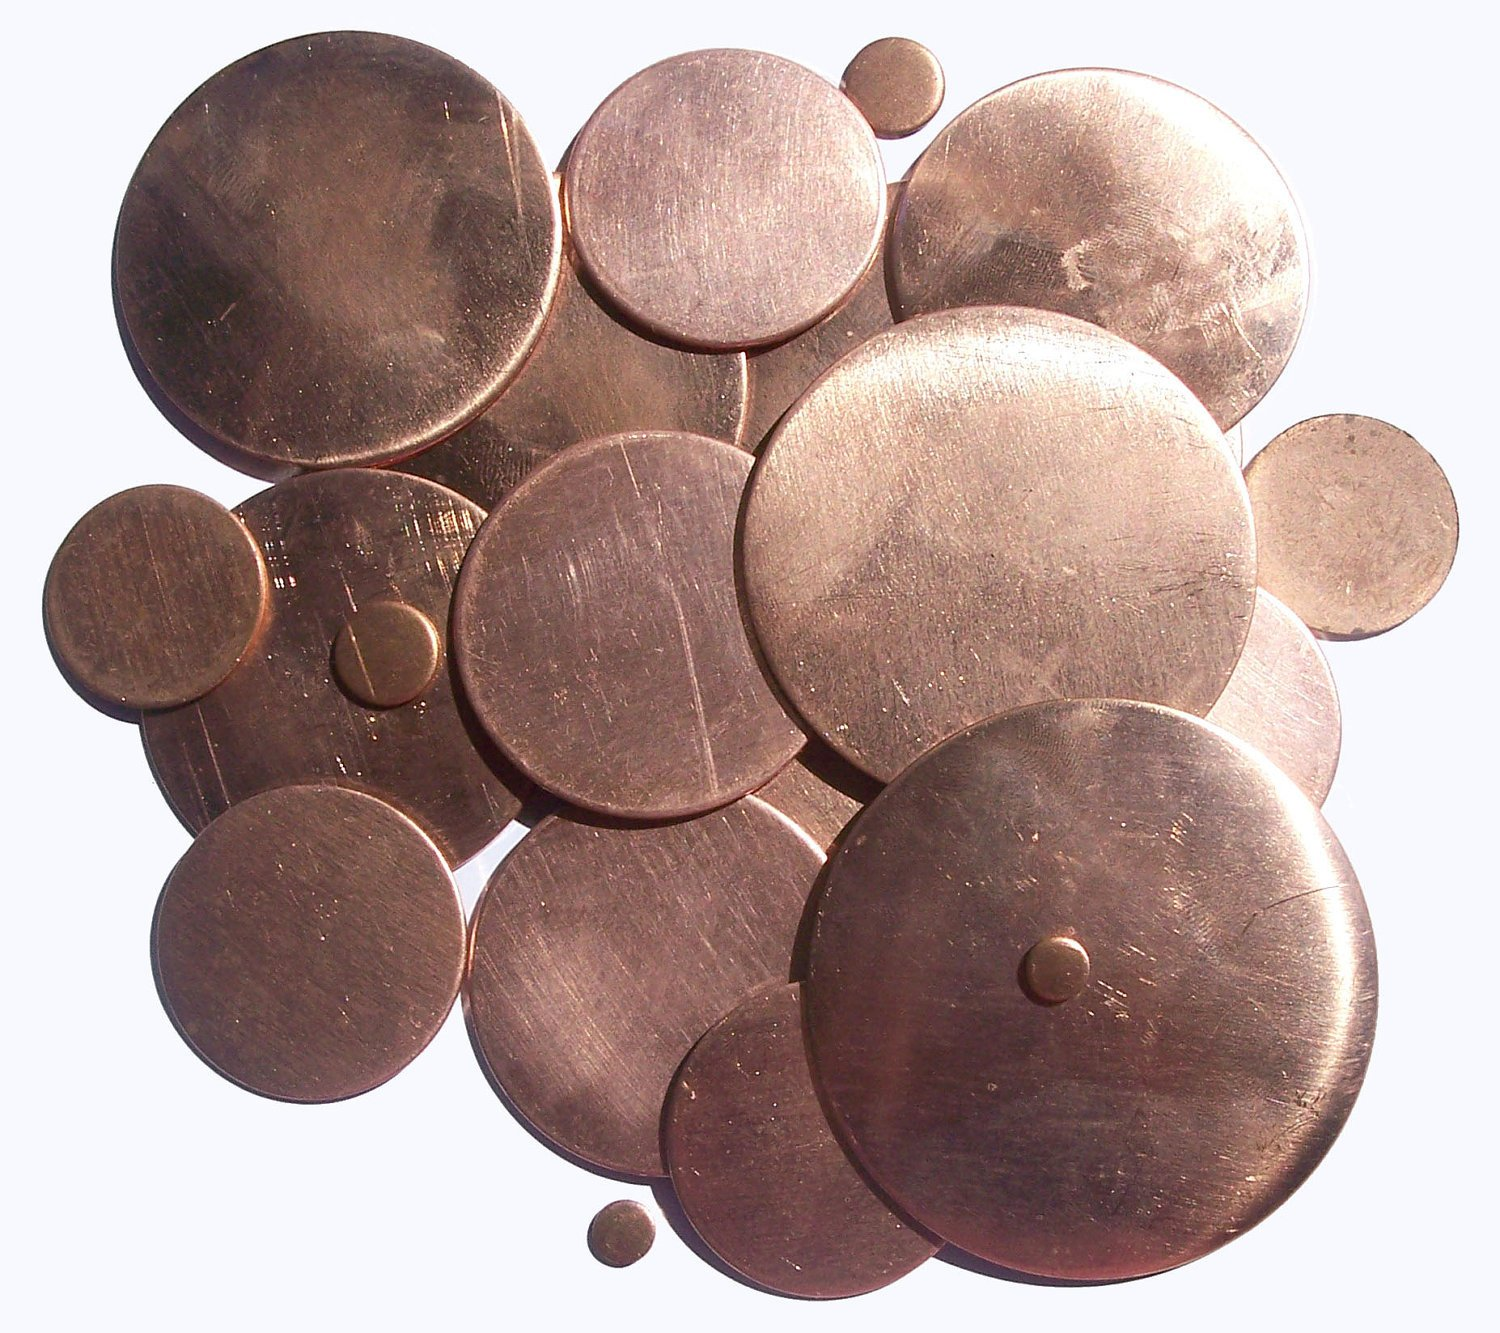 Jewelry Blank Copper Disc 20G 42mm Cutout for Enameling Stamping Texturing, Metal Charm - 3 Pieces